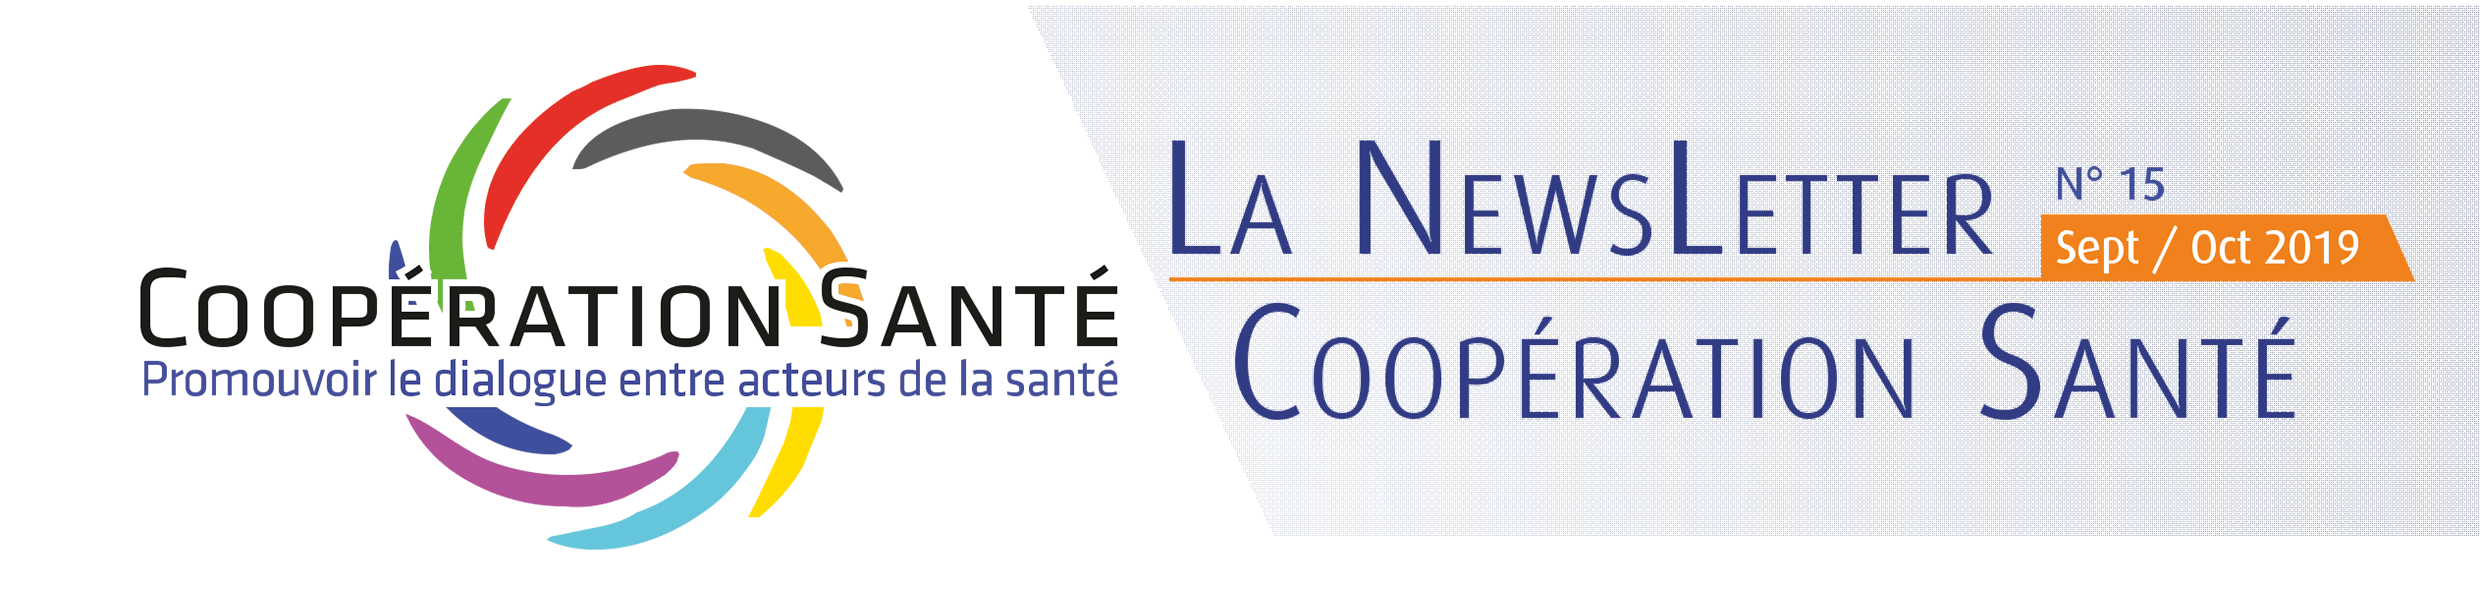 Newsletter-N15-septembre-octobre-2019